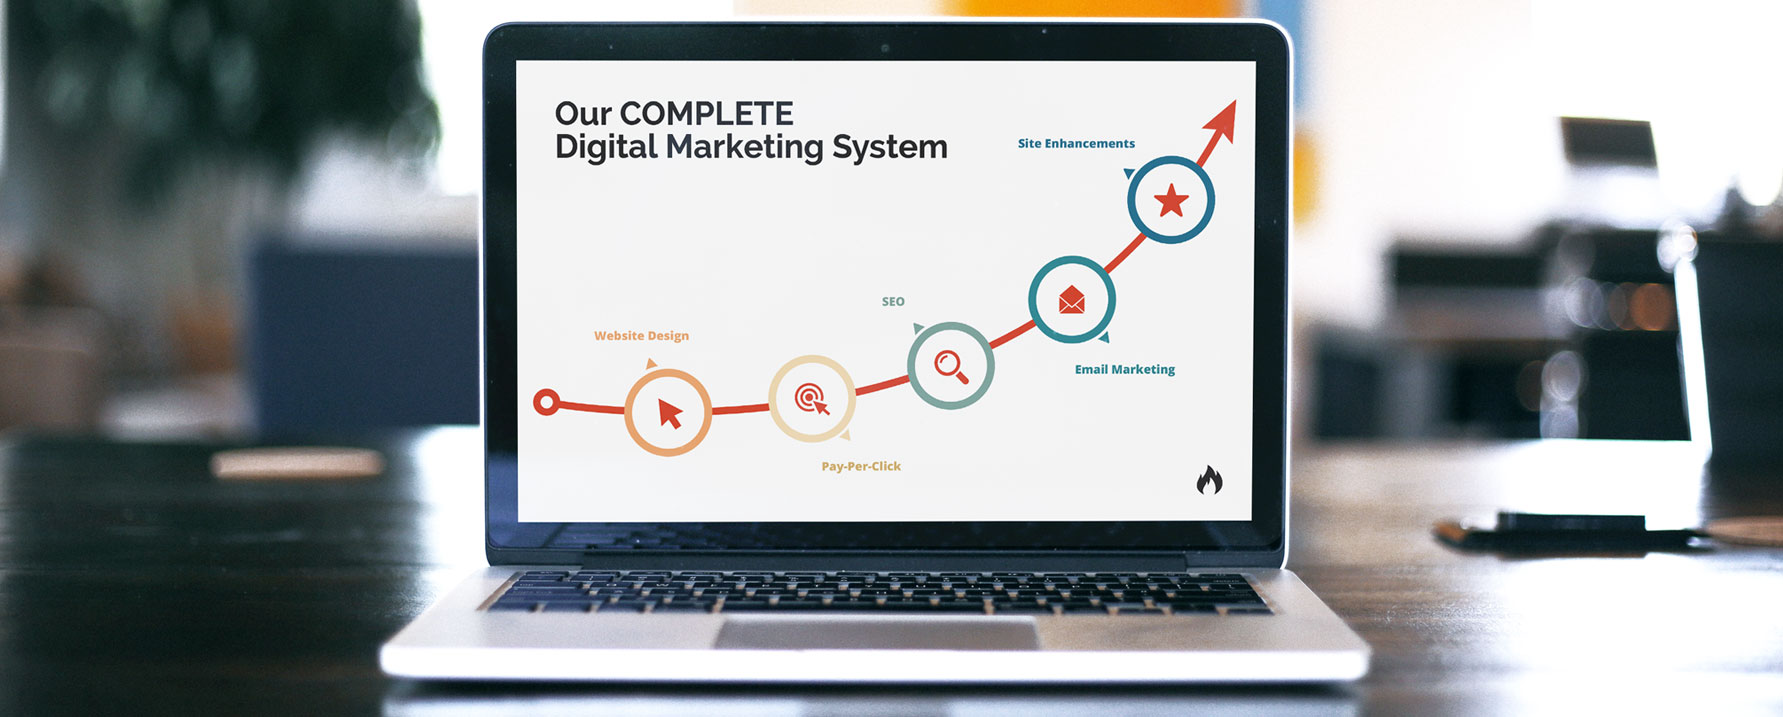 Our Complete Digital Marketing System